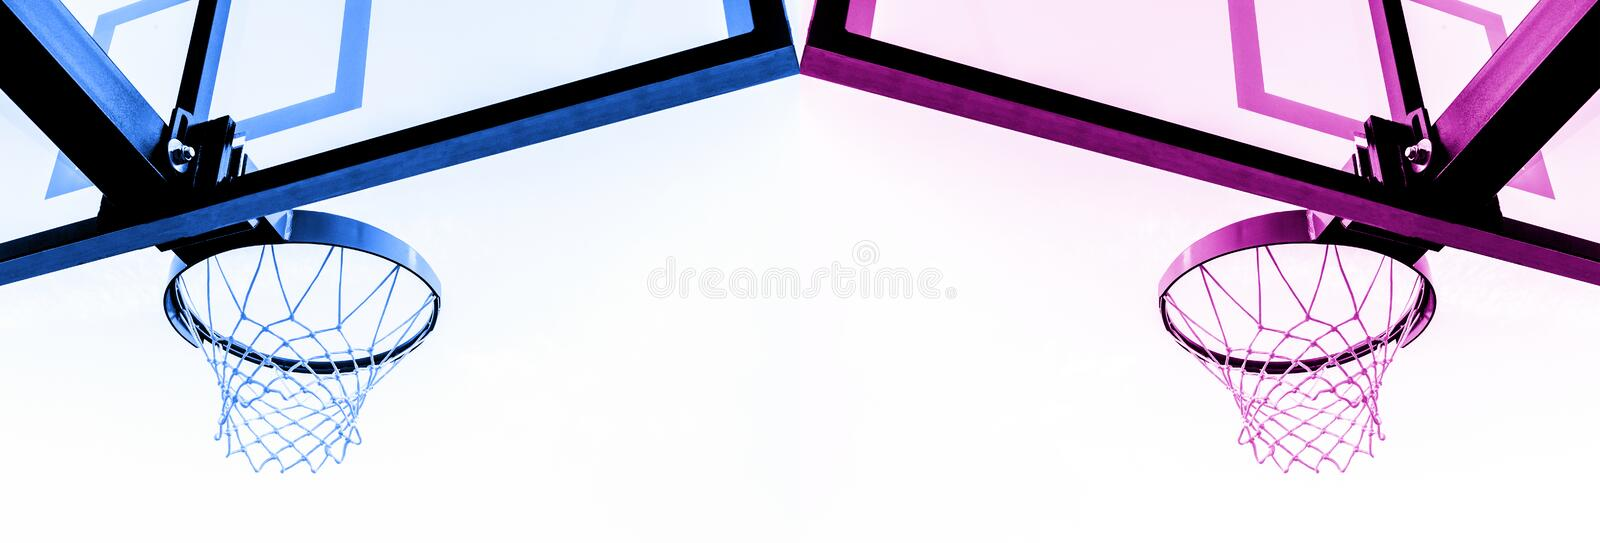 Basketball hoop isolated on white background. Blue and pink filter . stock photos